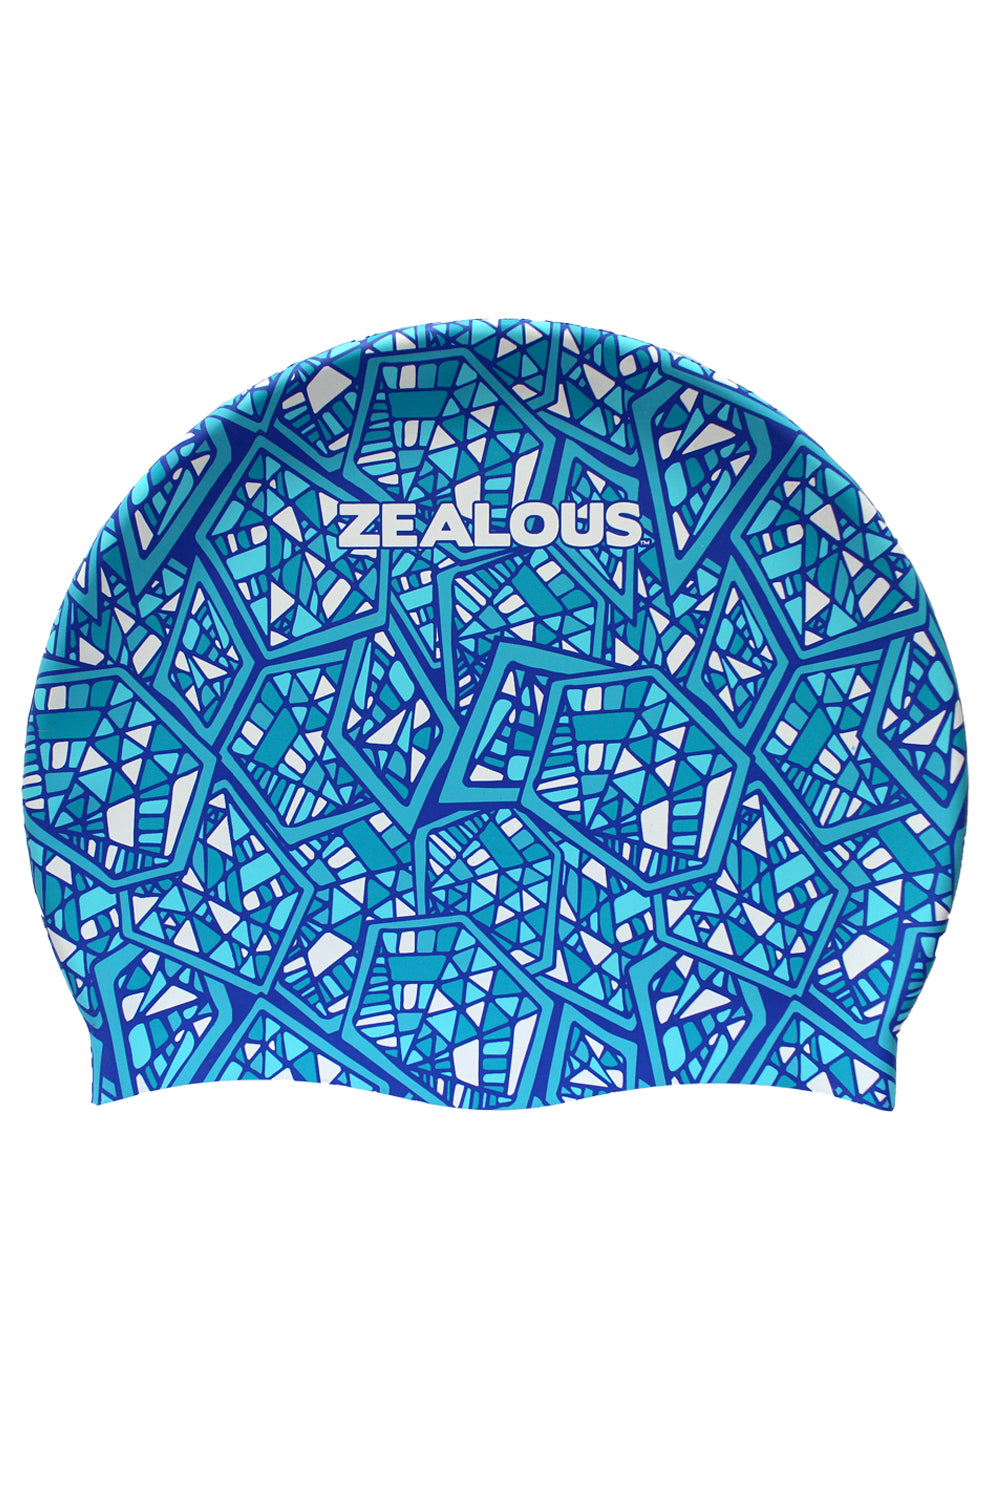 Day Break Accessories - Shop Zealous Training Swimwear